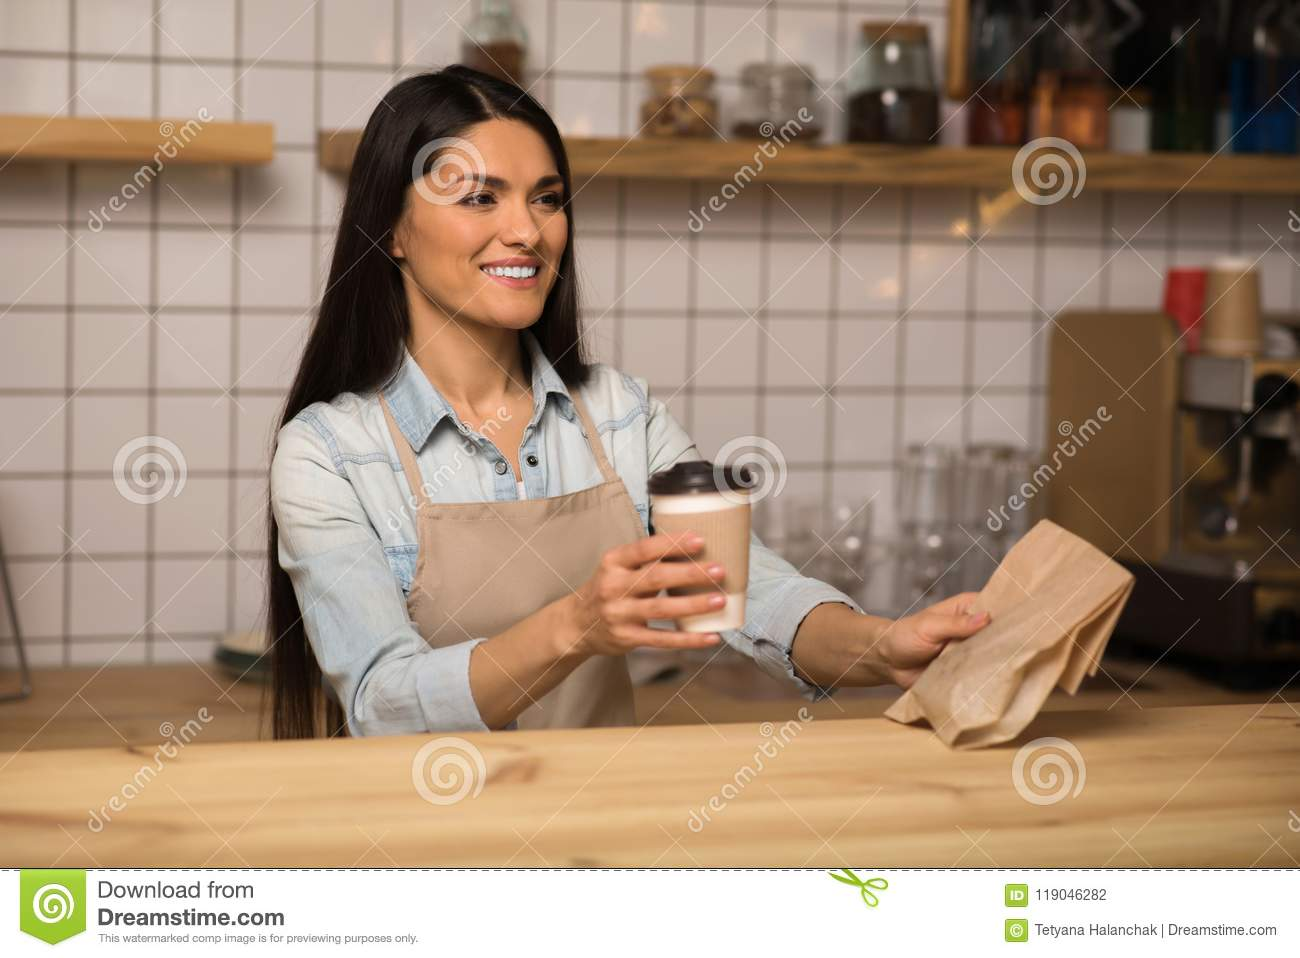 Waitress holding coffee to go and take away food in cafe